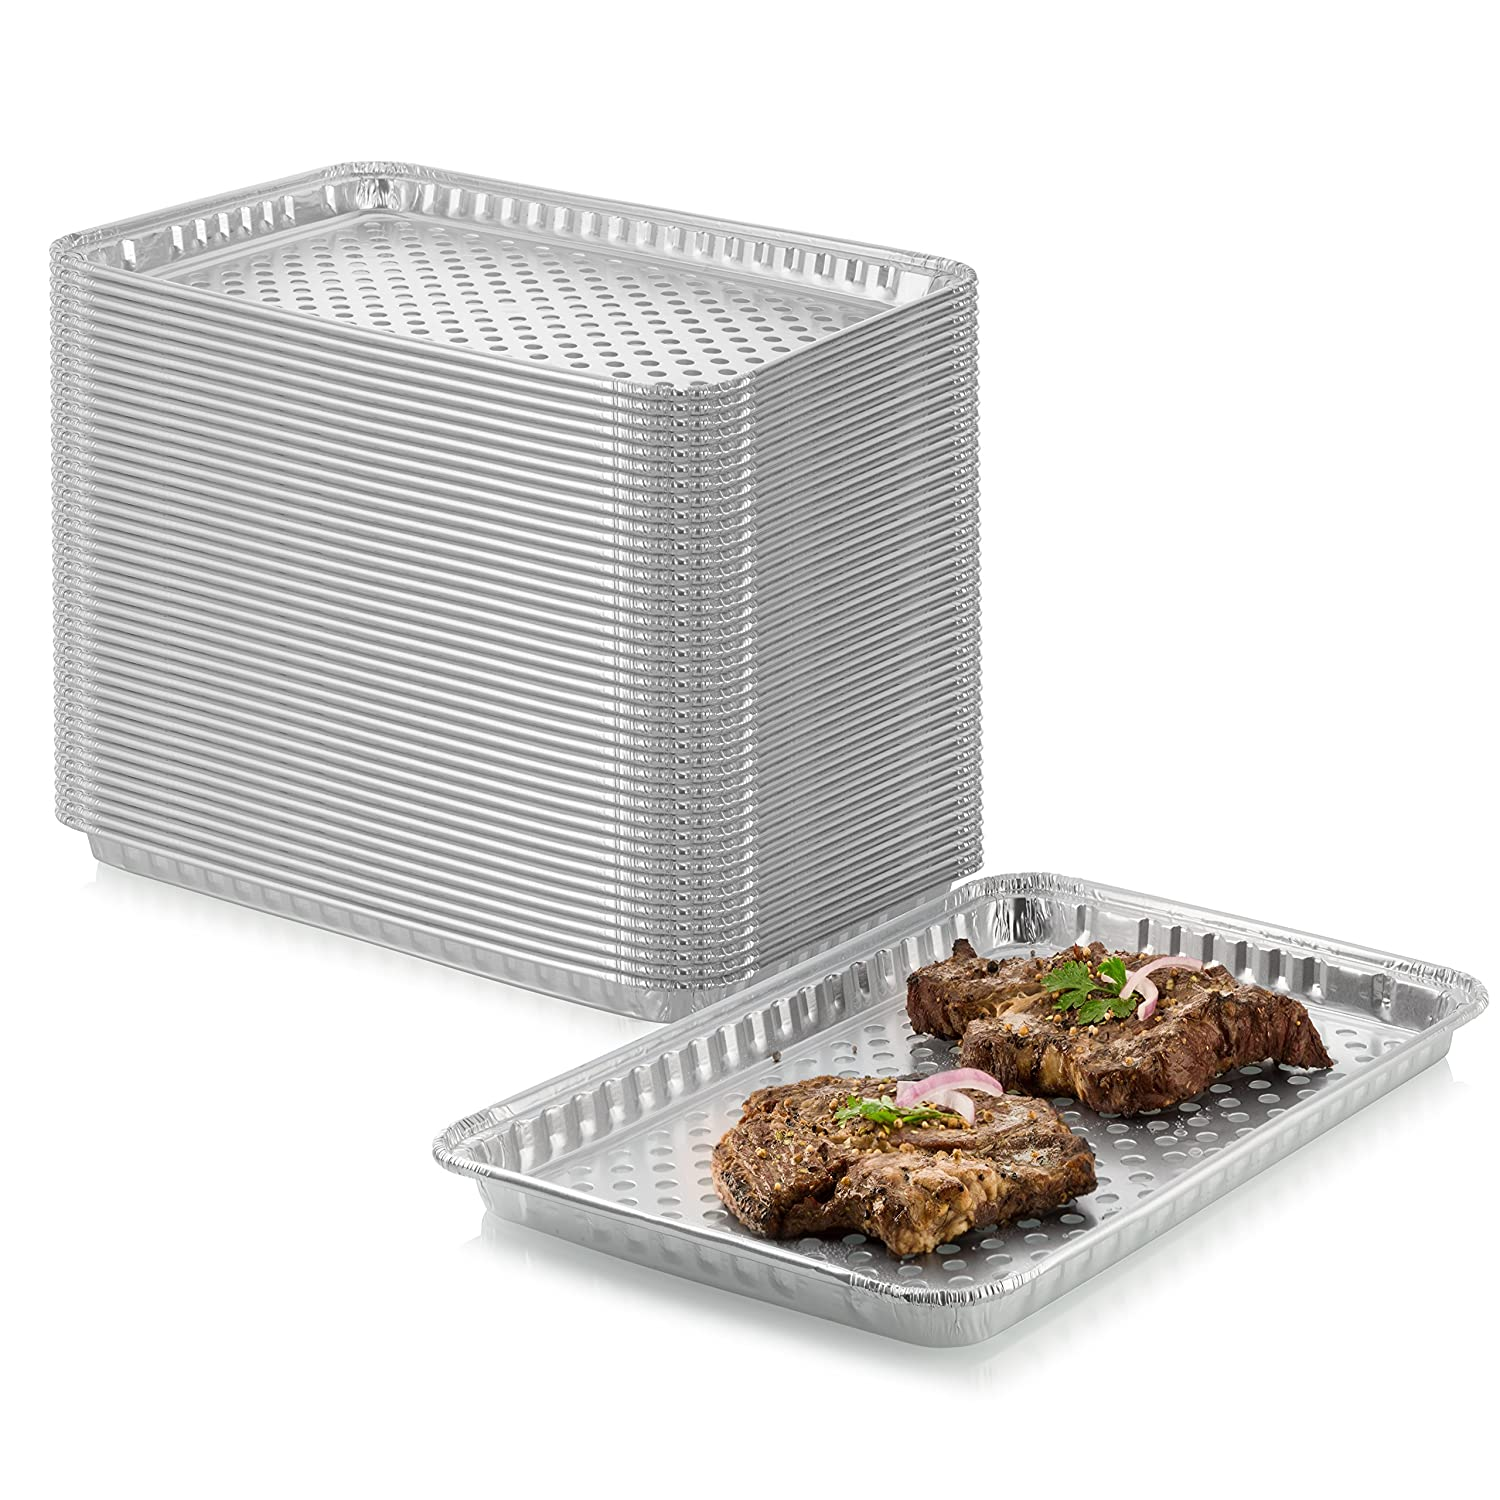 "10-Pack Disposable Aluminum Foil BBQ Grill Topper Pan – Prevents Food from Falling into the Grill or Sticking to the Grate – No Clean Up Required – Perfect for Camping and Outdoor Use - 15"" x10"" x1.5"" DCS Deals inc."